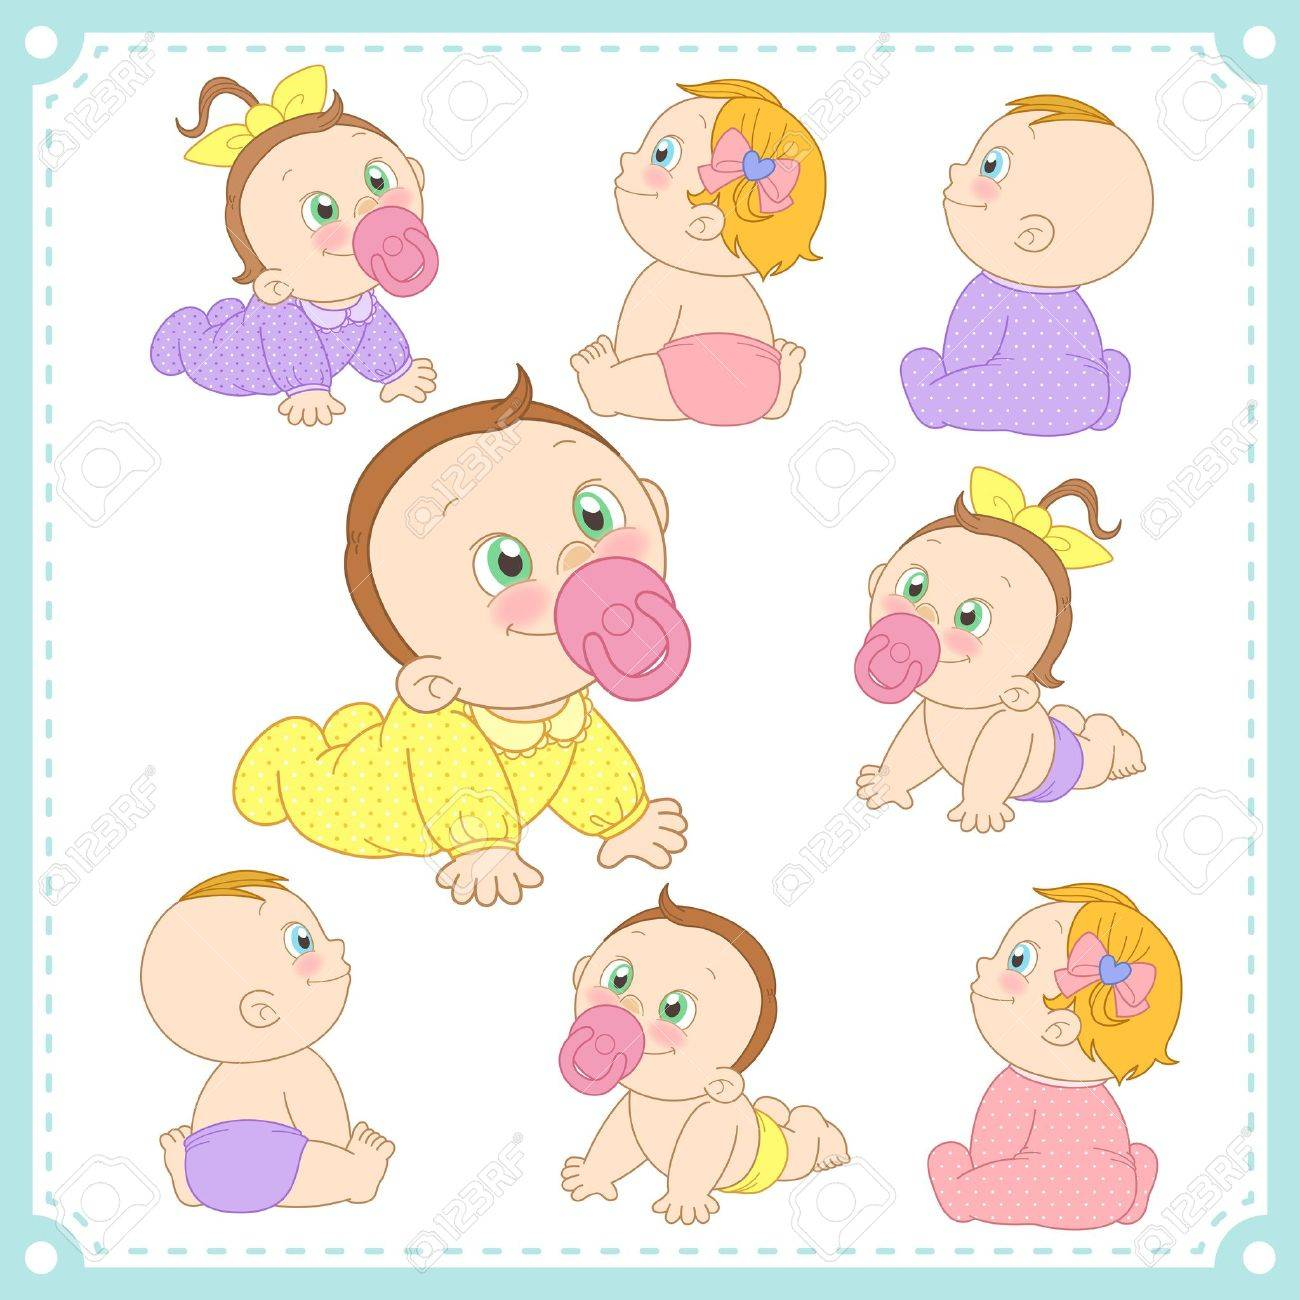 illustration of baby boys and baby girls with white background Stock Vector - 21282541